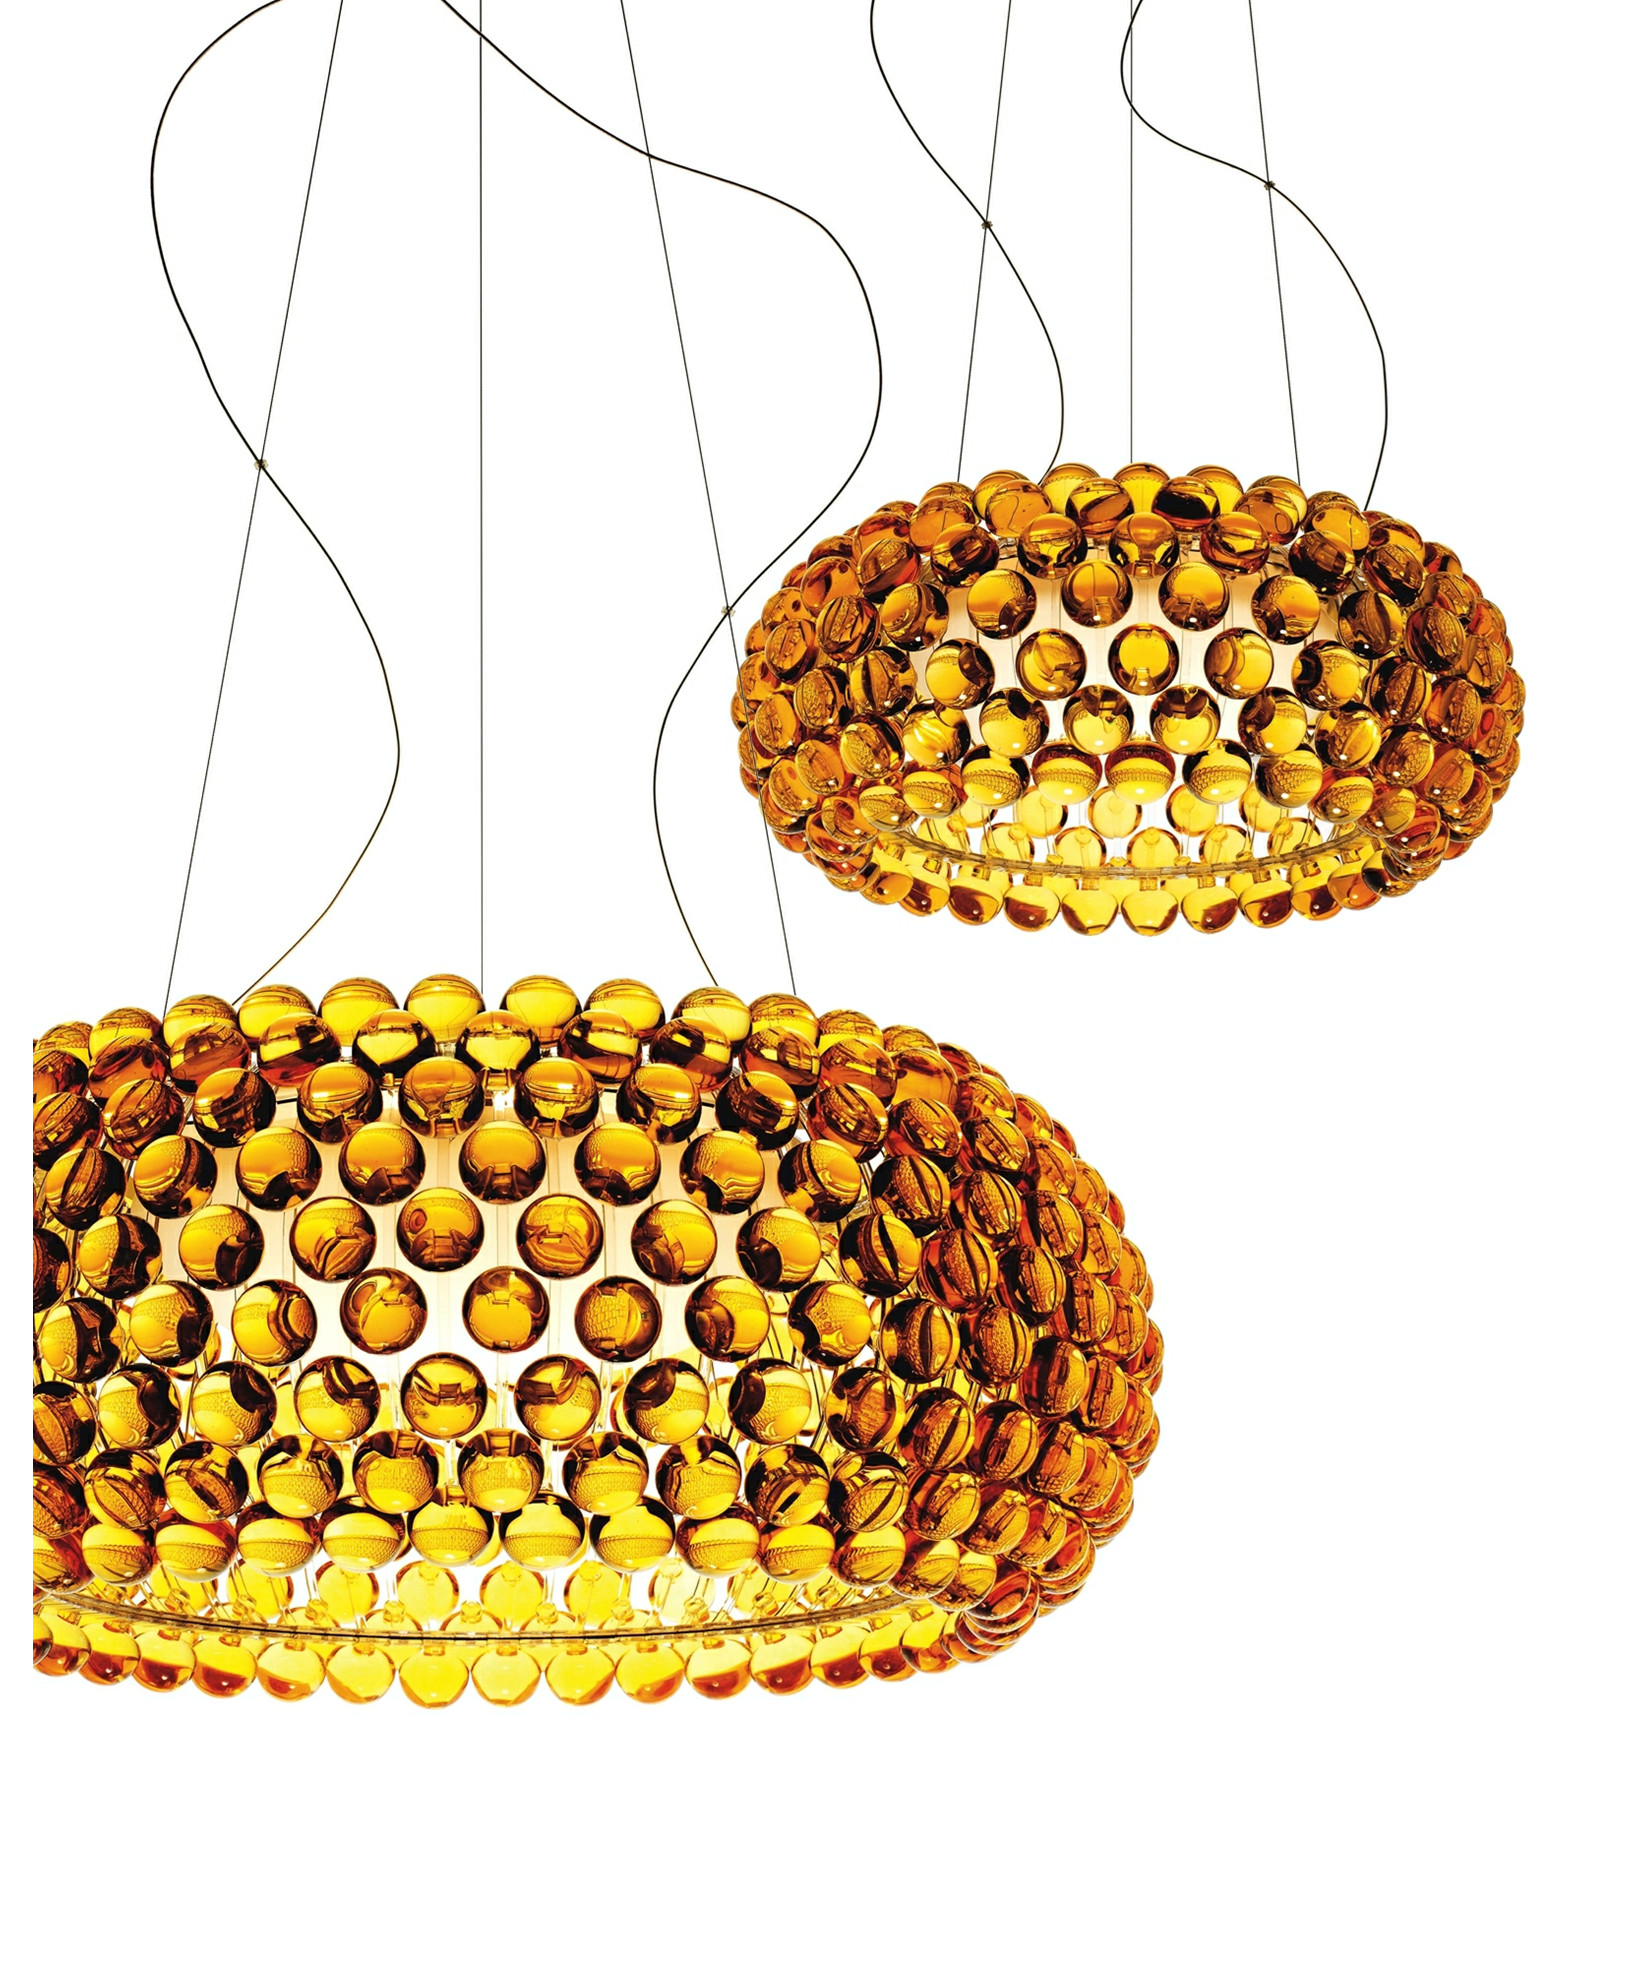 Lampe Caboche Patricia Urquiola caboche large led pendant dimmable yellow gold - foscarini